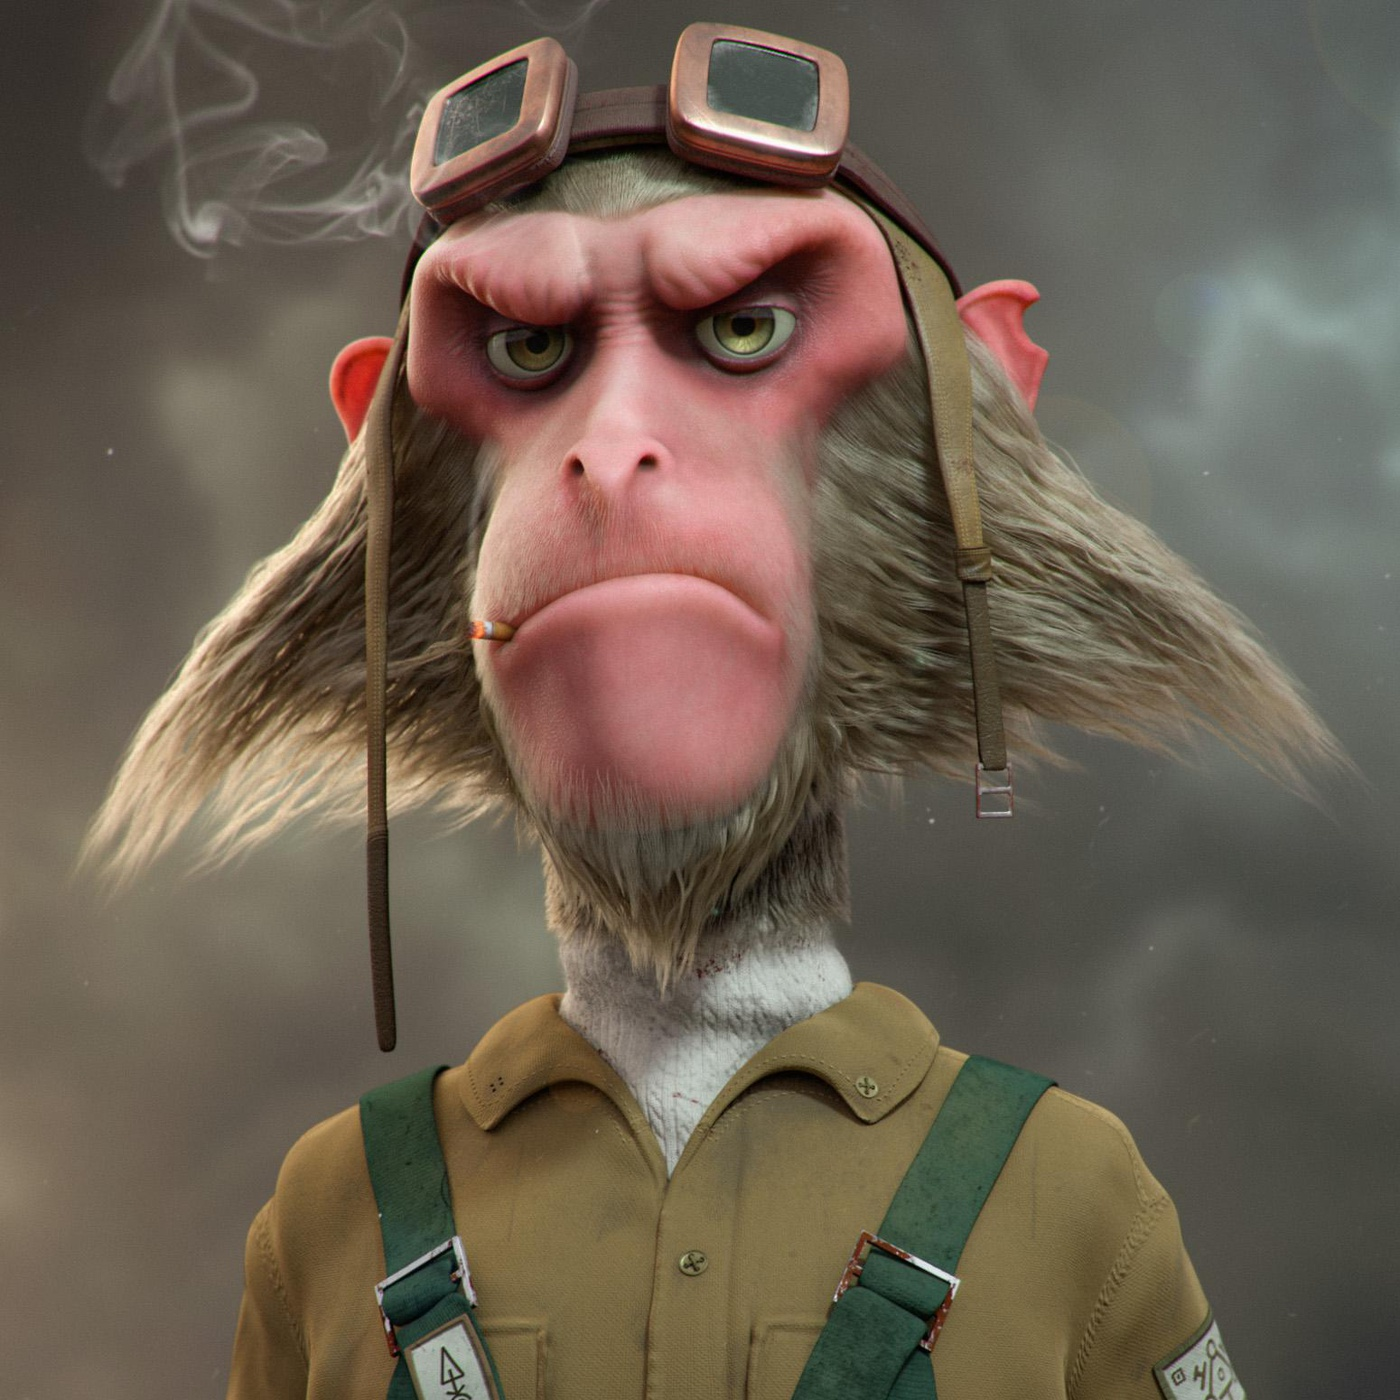 monkey 3d model render character design mammal detailing